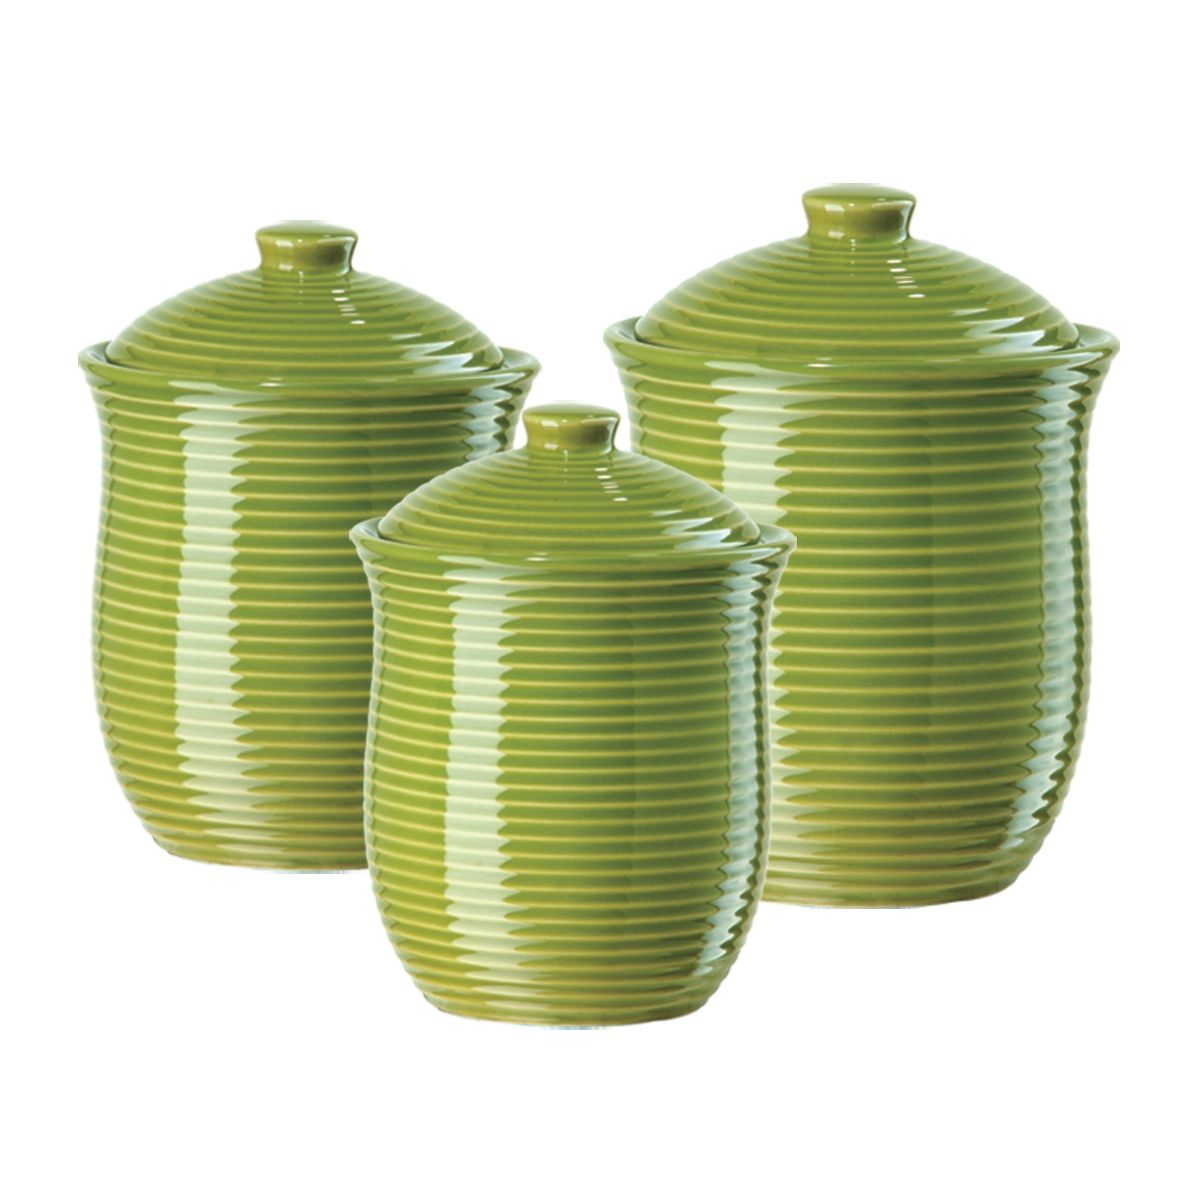 ceramic canisters sets for the kitchen canister sets storage canisters for the kitchen 26514